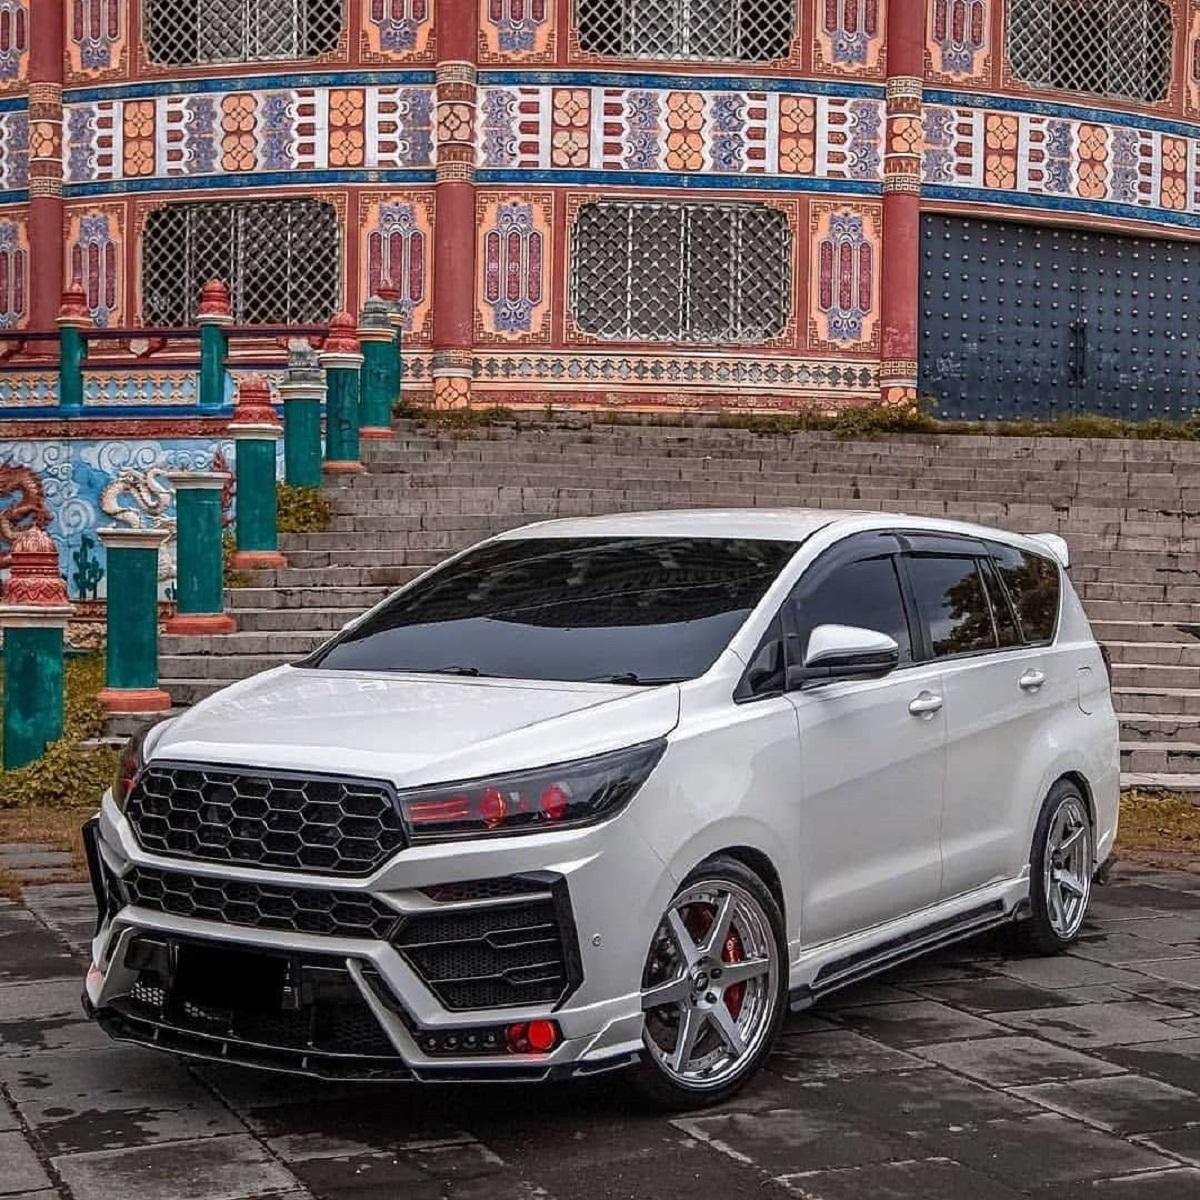 Innova Crysta With Lamborghini Urus Inspired Body Kit And Lowered Ride Height Looks Mean